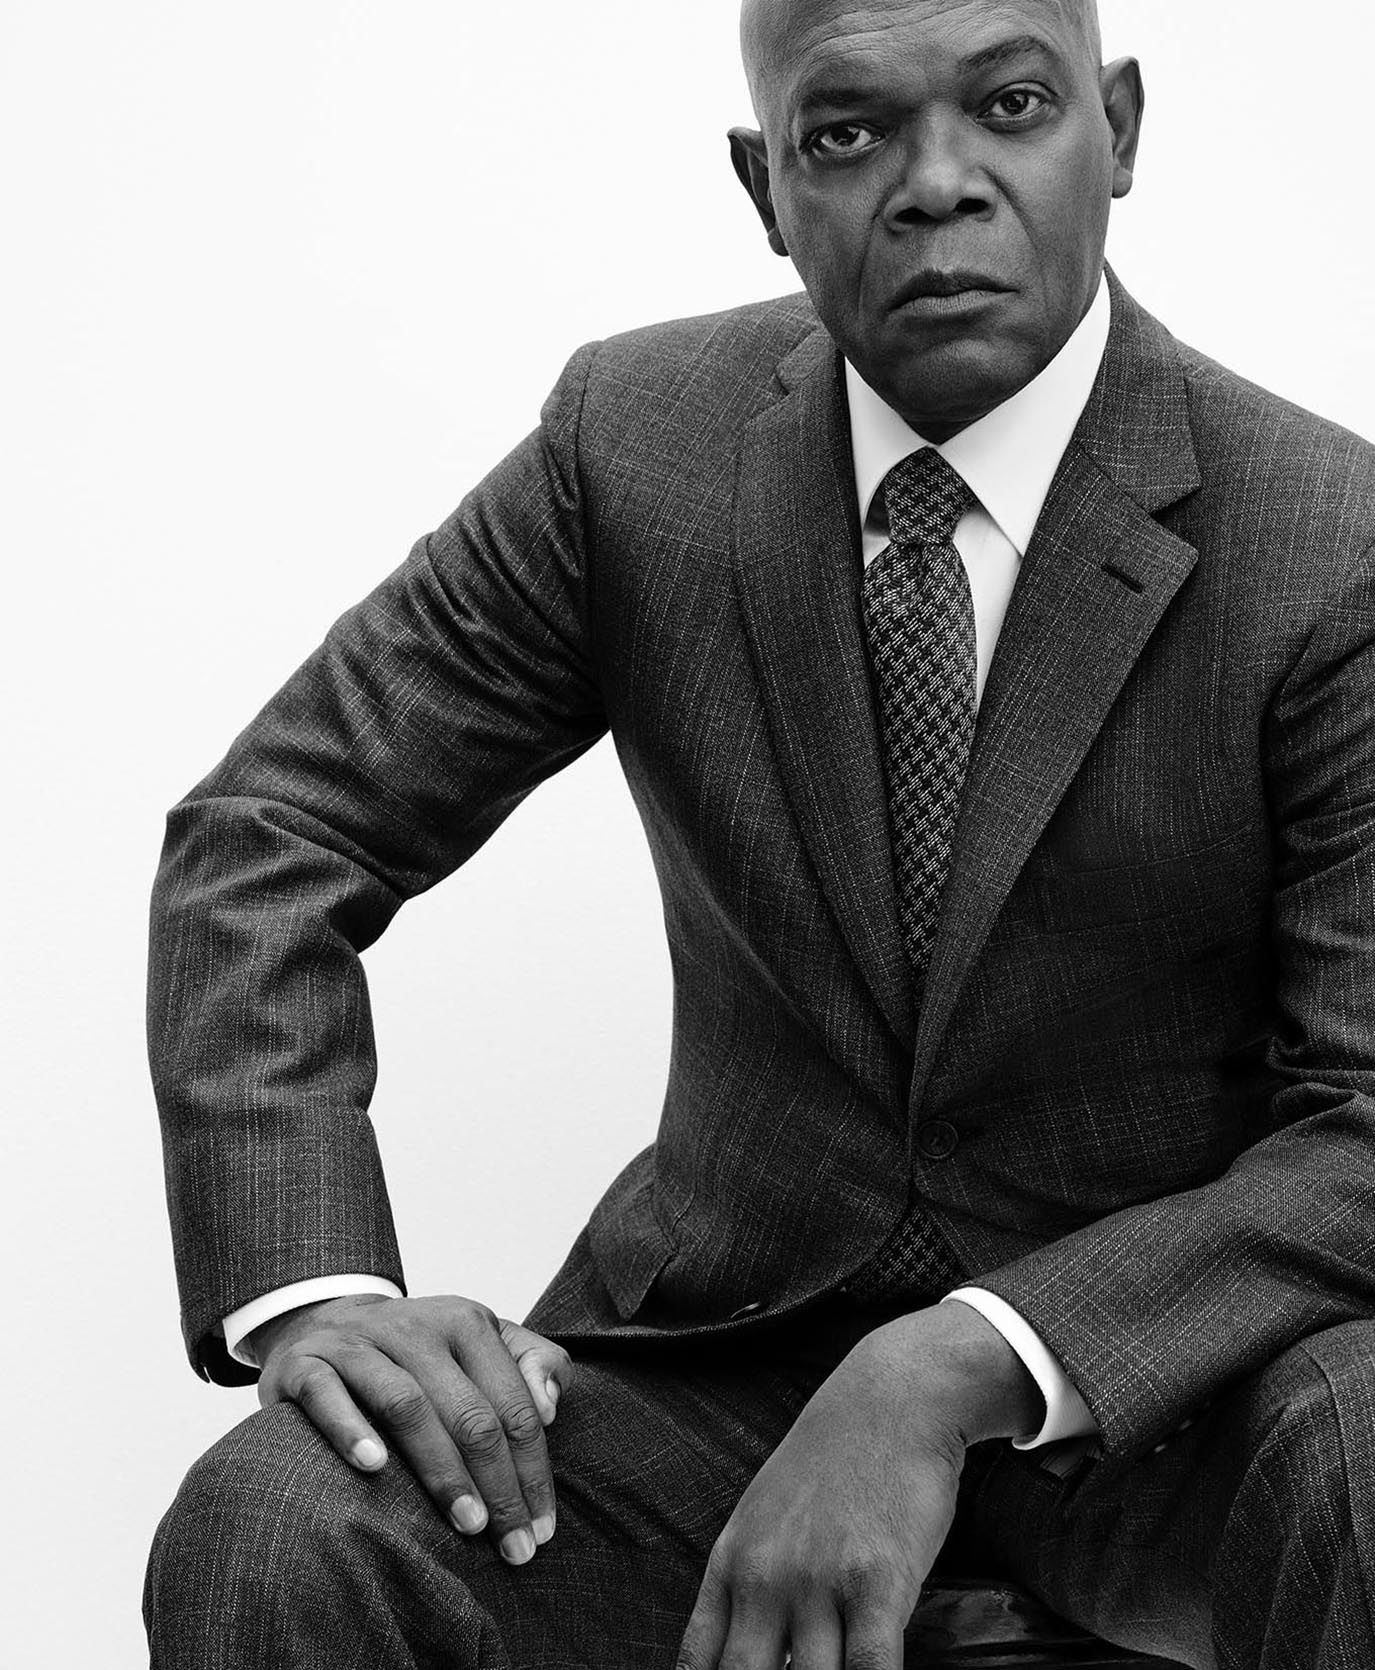 Brioni-advertising-Samuel-L-Jackson-suit